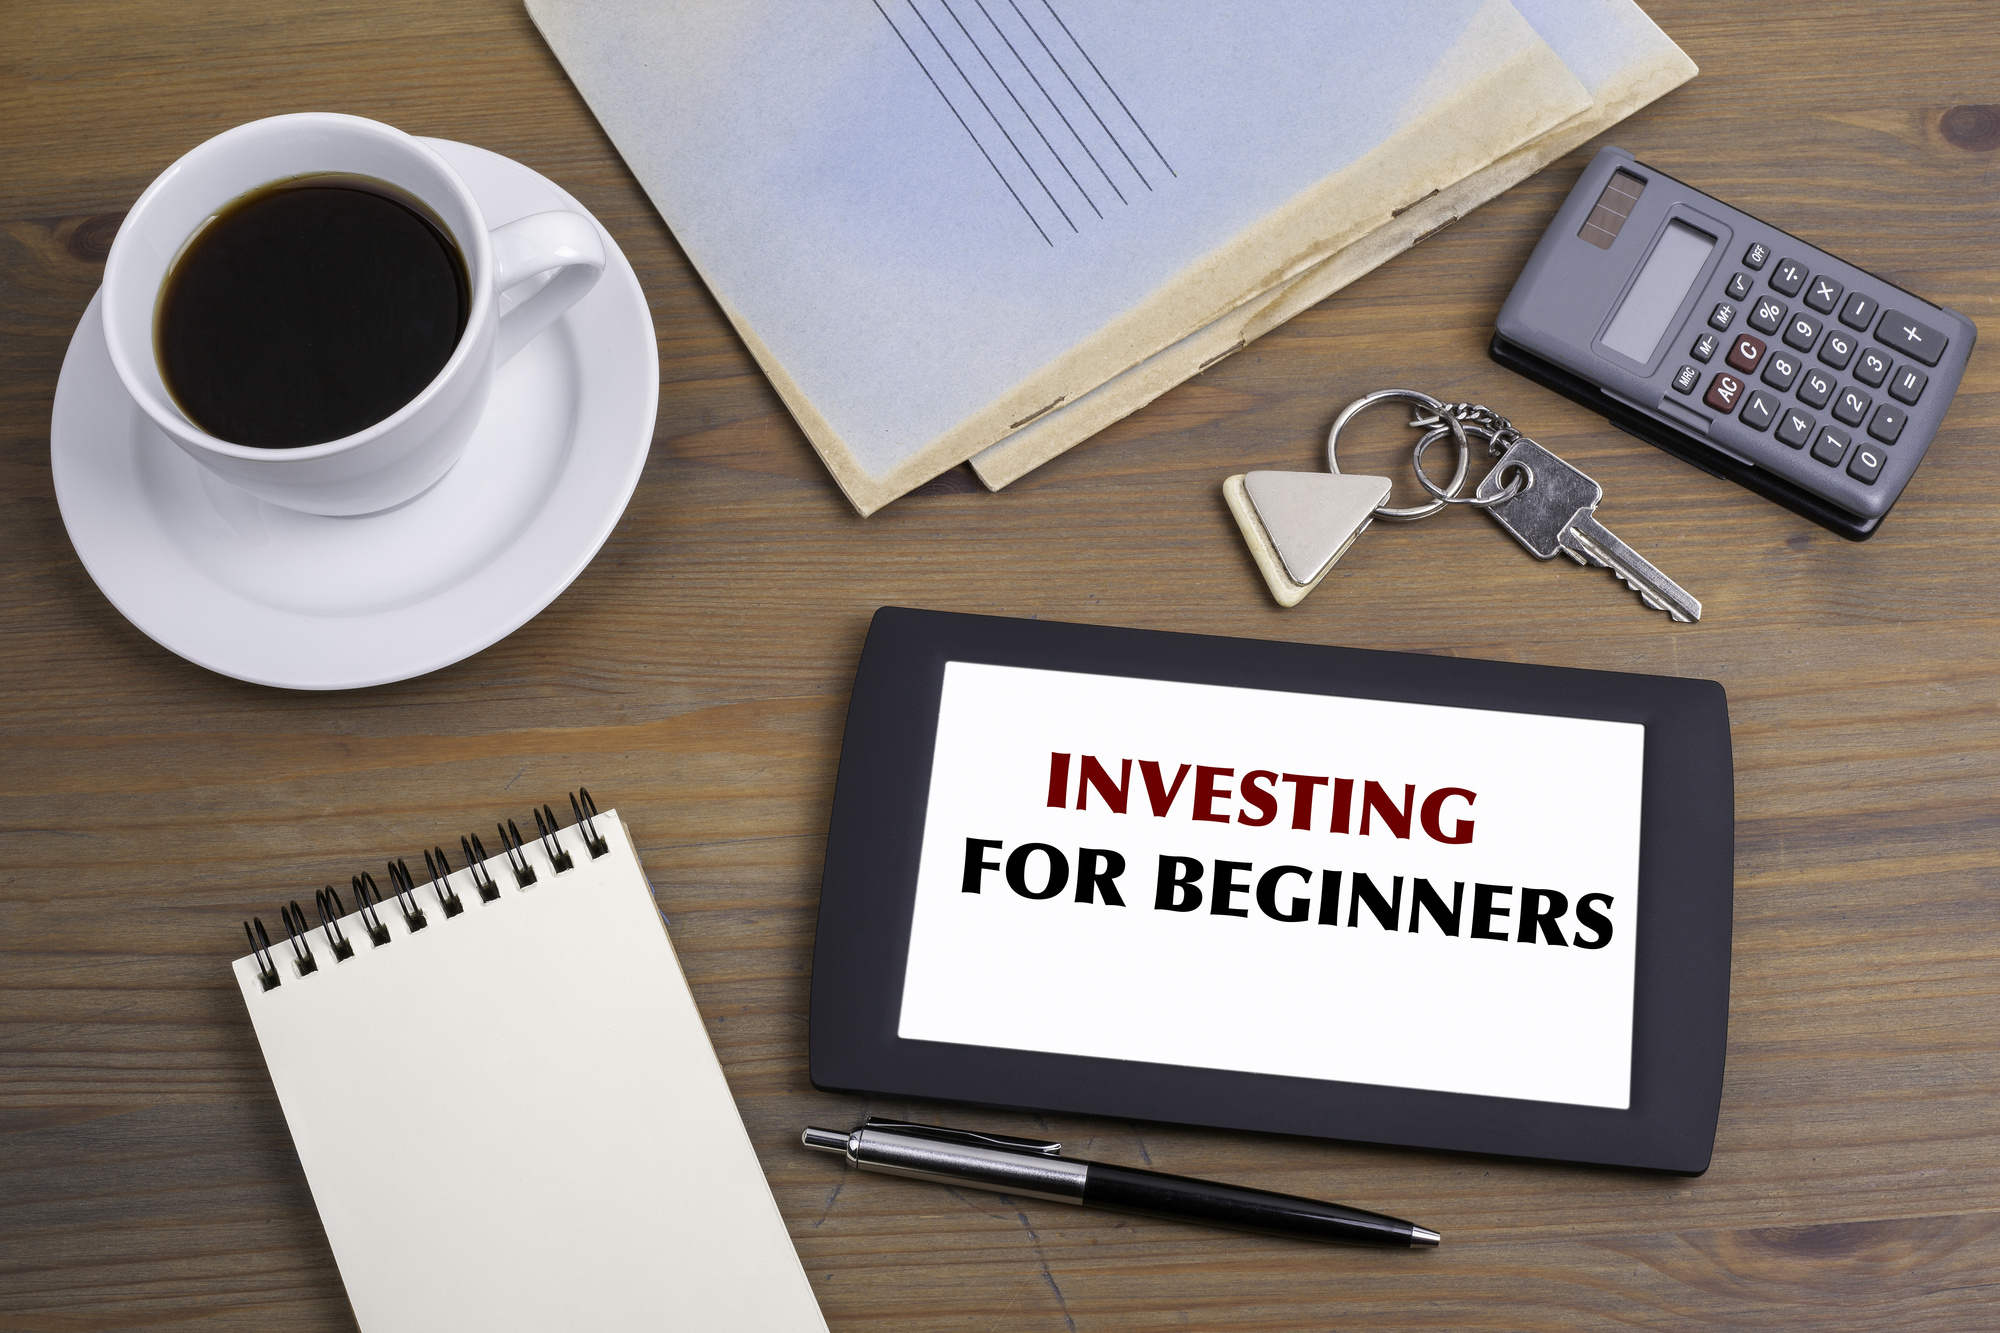 INVESTING FOR BEGINNERS. Text on tablet device on a wooden table